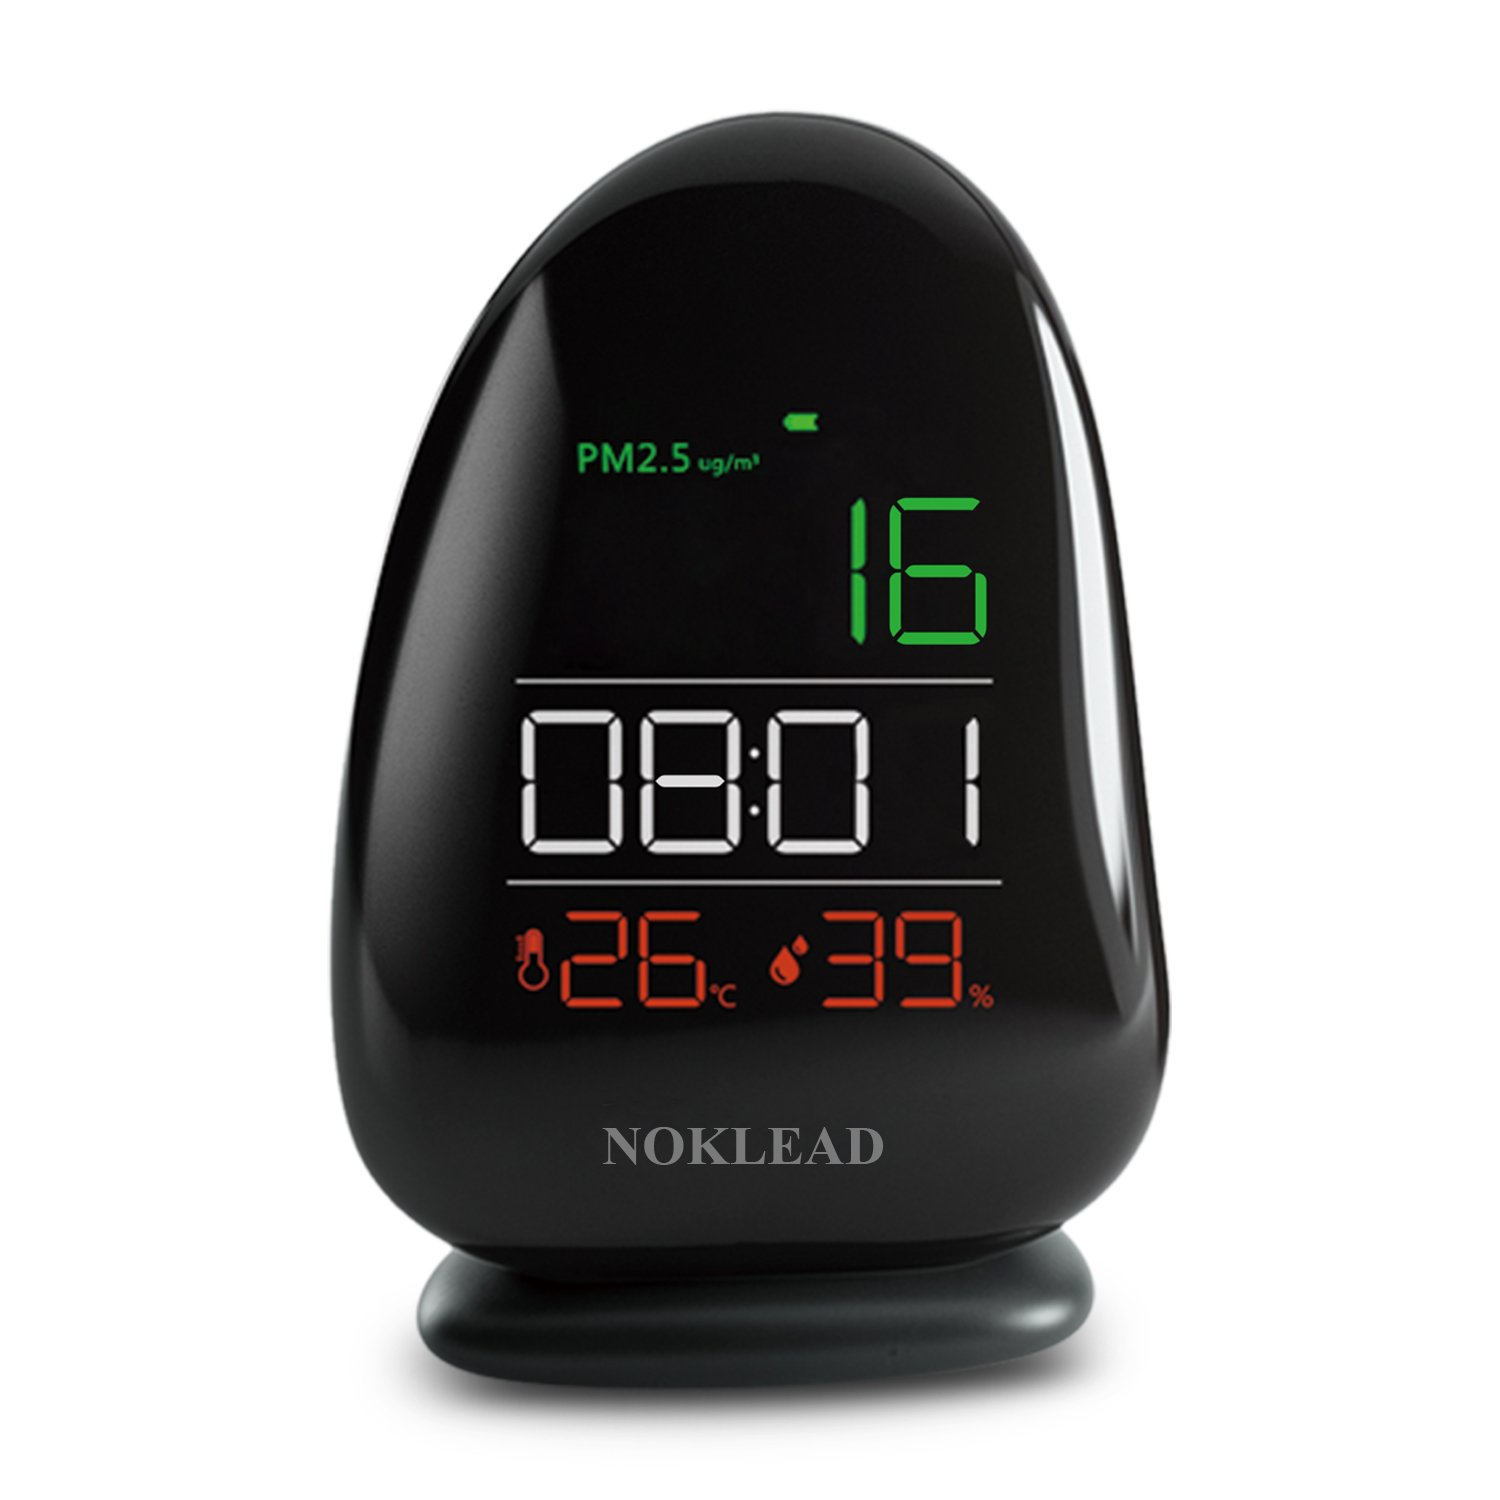 NOKLEAD Air Quality Monitor PM2.5 Temperature Rh Humidity Meter with Time for Home Office School Hospital, Powered via Built-in 1000mAh Lithium Battery or USB Port with Charging Dock (Black)